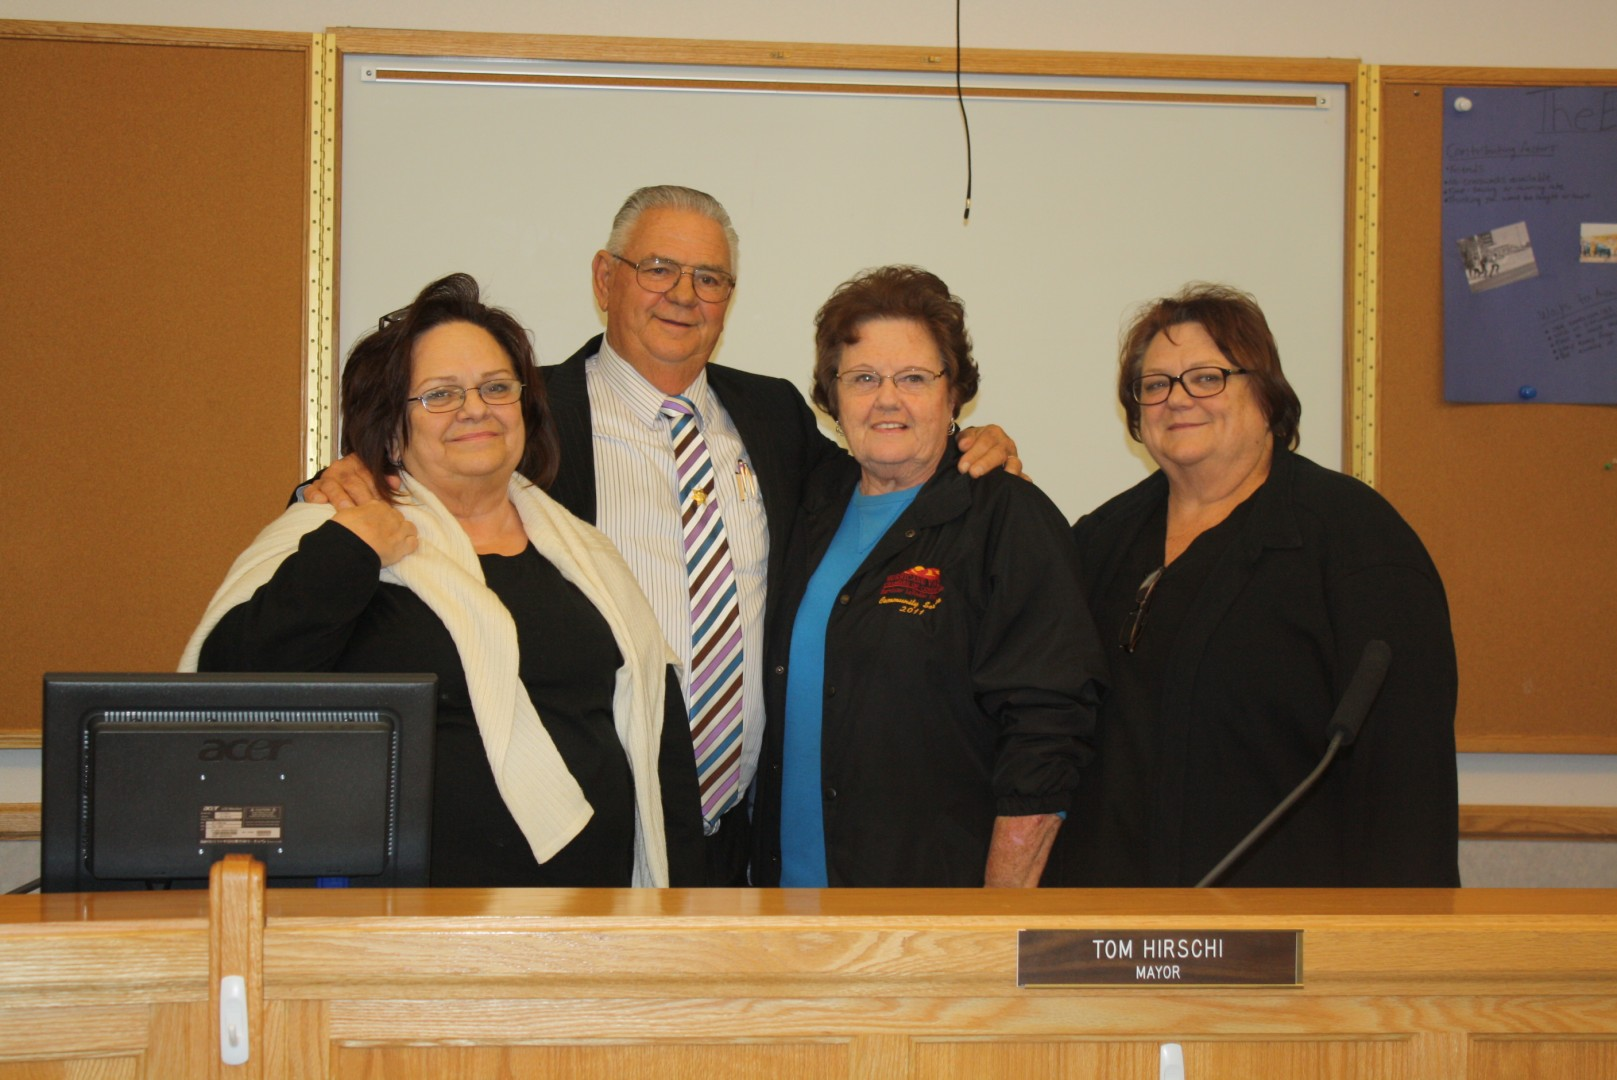 Former Mayor Tom Hirschi poses with his three sisters after his final City Council Meeting as mayor. Hurricane City Council Chambers, Hurricane, Utah, Jan. 3, 2014 | Photo by Reuben Wadsworth, St. George News